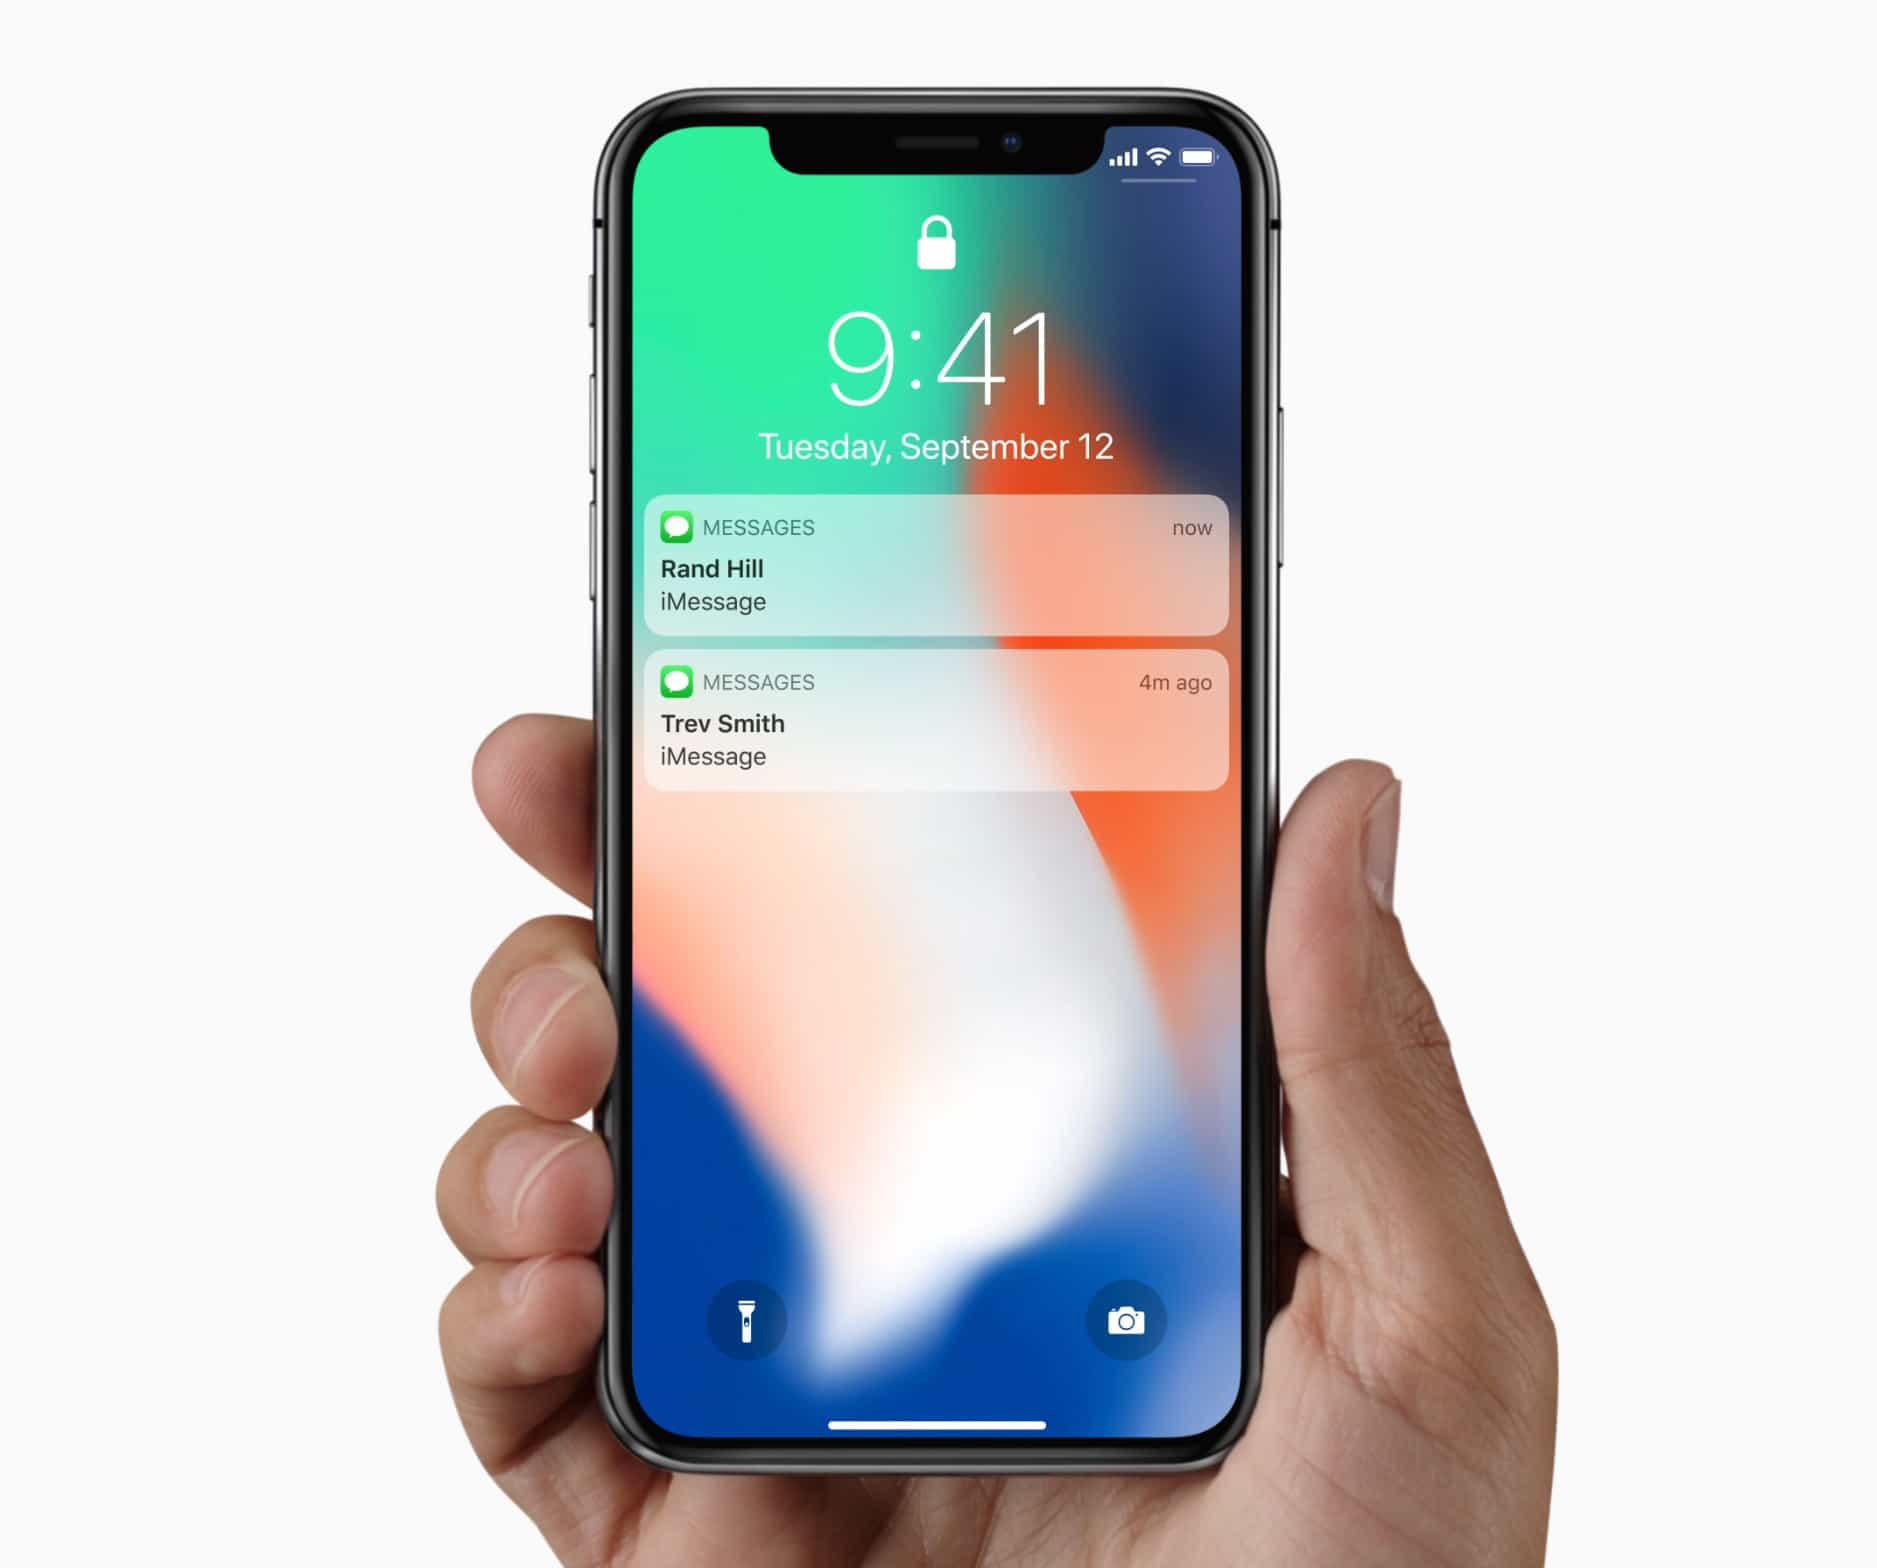 iPhone X lock screen notifications